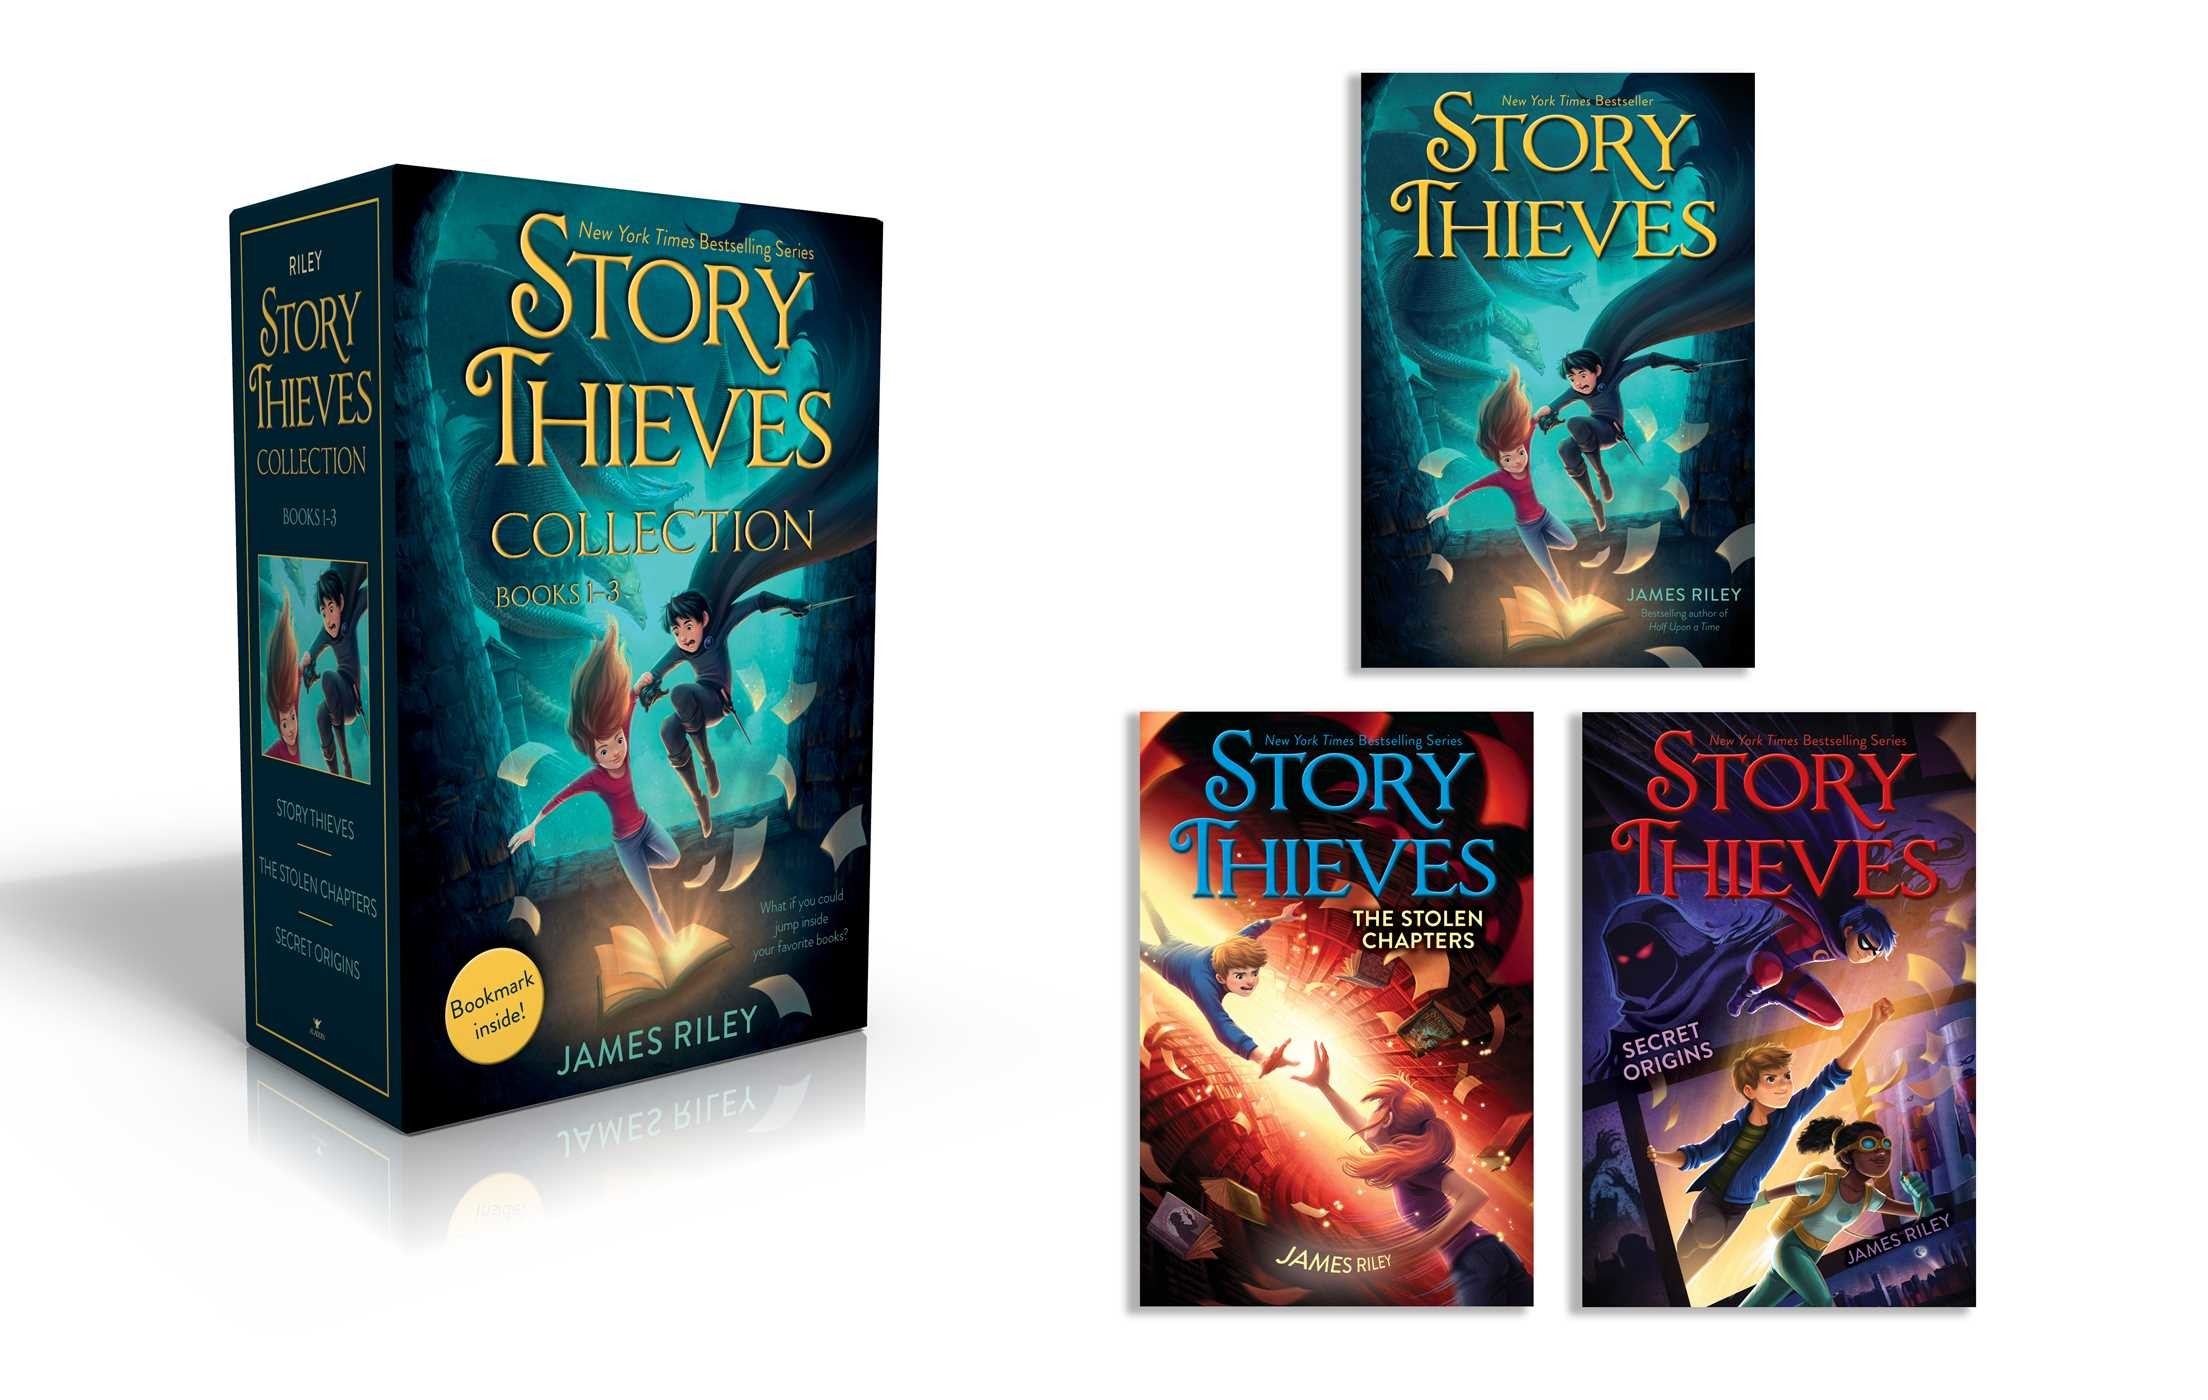 Story thieves collection books 1 3 bookmark inside 9781534414747.in01